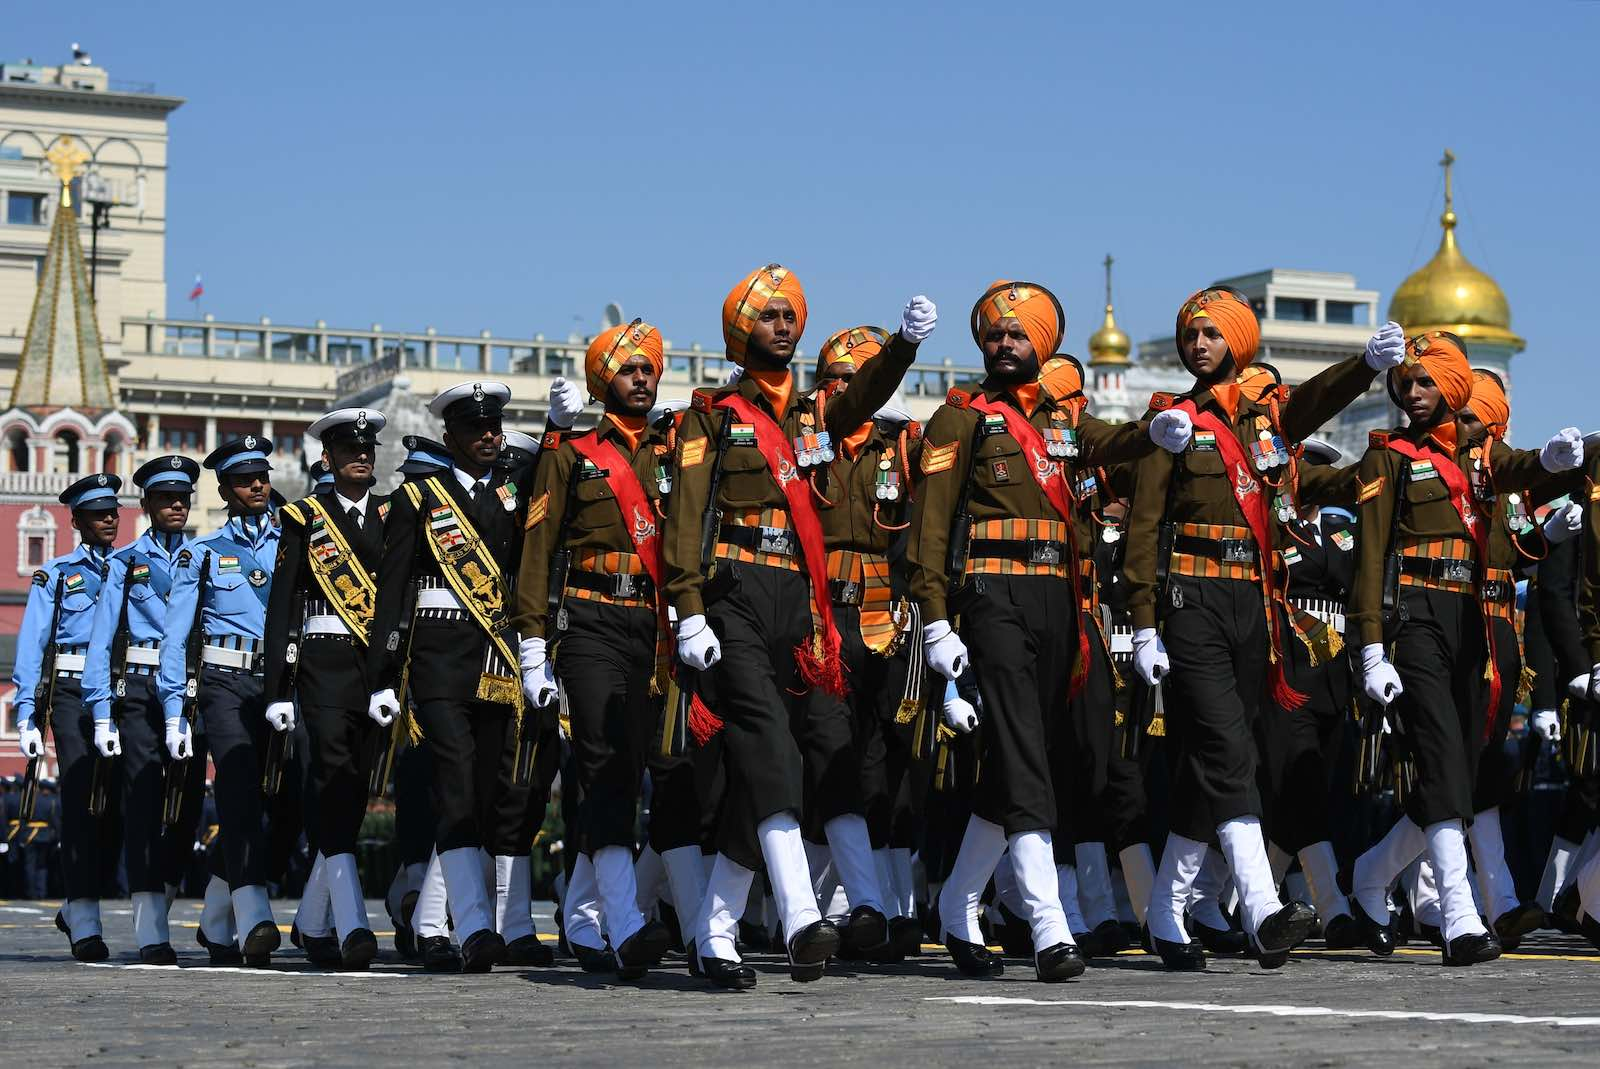 Servicemen of the Armed Forces of India march during a Victory Day military parade in Red Square marking the 75th anniversary of the victory in Second World War on 24 June 2020 in Moscow, Russia (Ramil Sitdikov via Getty Images)